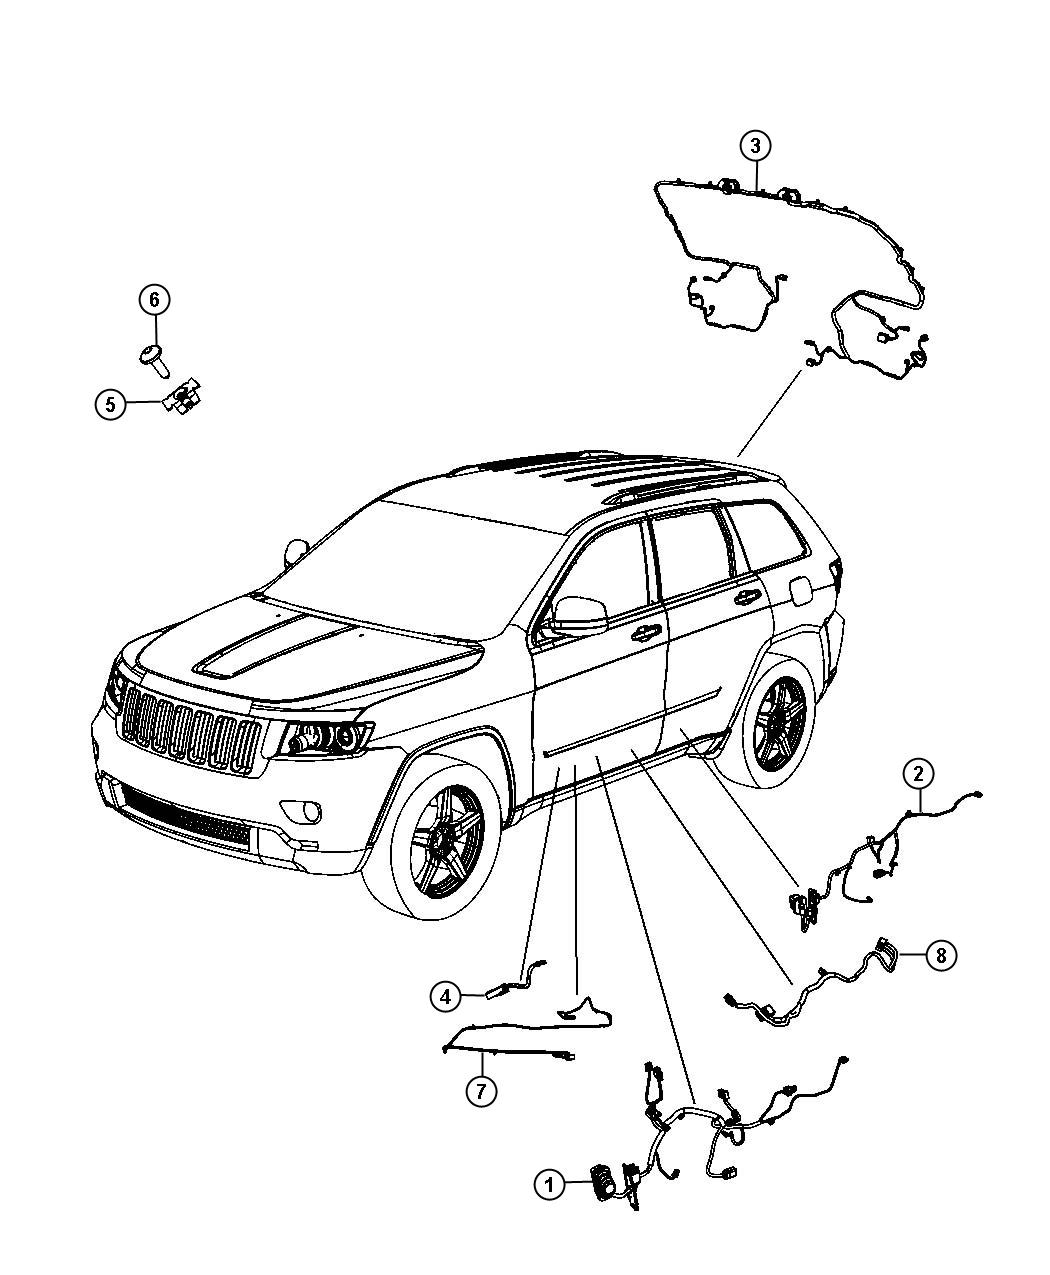 Jeep Grand Cherokee Wiring. Liftgate. Electrical, door